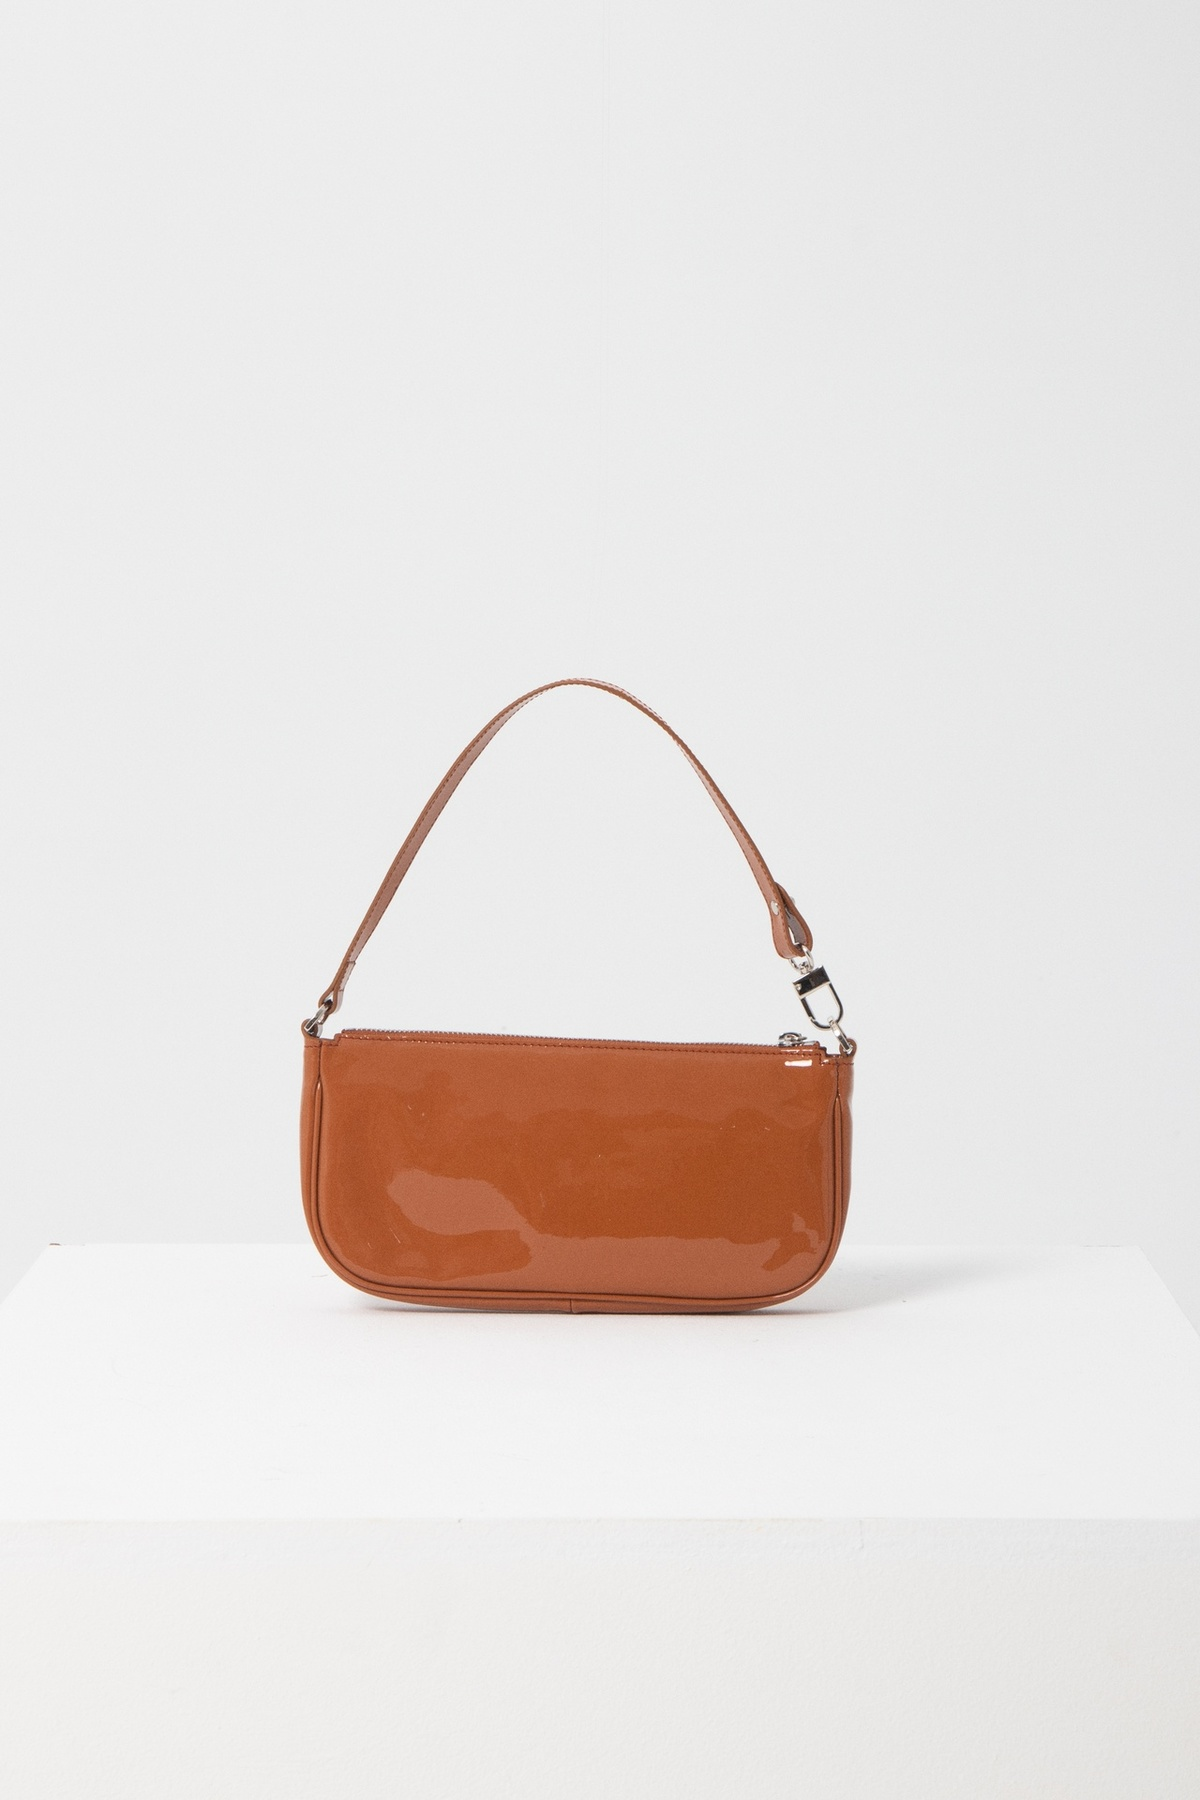 BY FAR RACHEL LEATHER BAG by BY FAR, available on garmentory.com for $380.98 Kendall Jenner Bags Exact Product